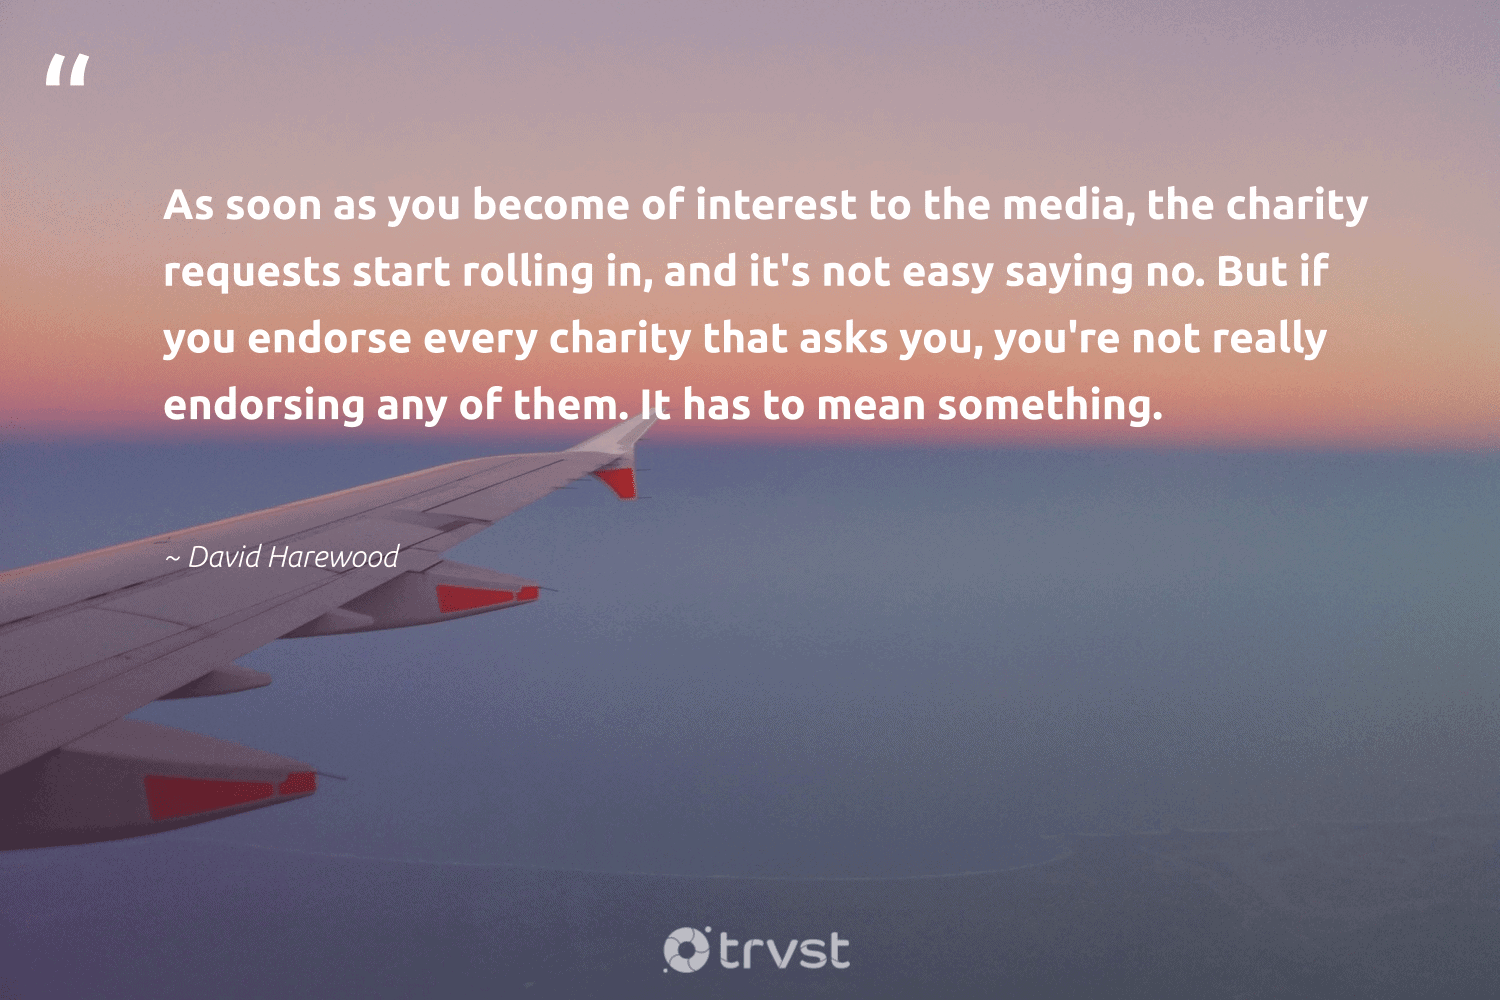 """""""As soon as you become of interest to the media, the charity requests start rolling in, and it's not easy saying no. But if you endorse every charity that asks you, you're not really endorsing any of them. It has to mean something.""""  - David Harewood #trvst #quotes #bethechange #thinkgreen #dogood #beinspired #socialchange #gogreen #weareallone #planetearthfirst #communities #impact"""